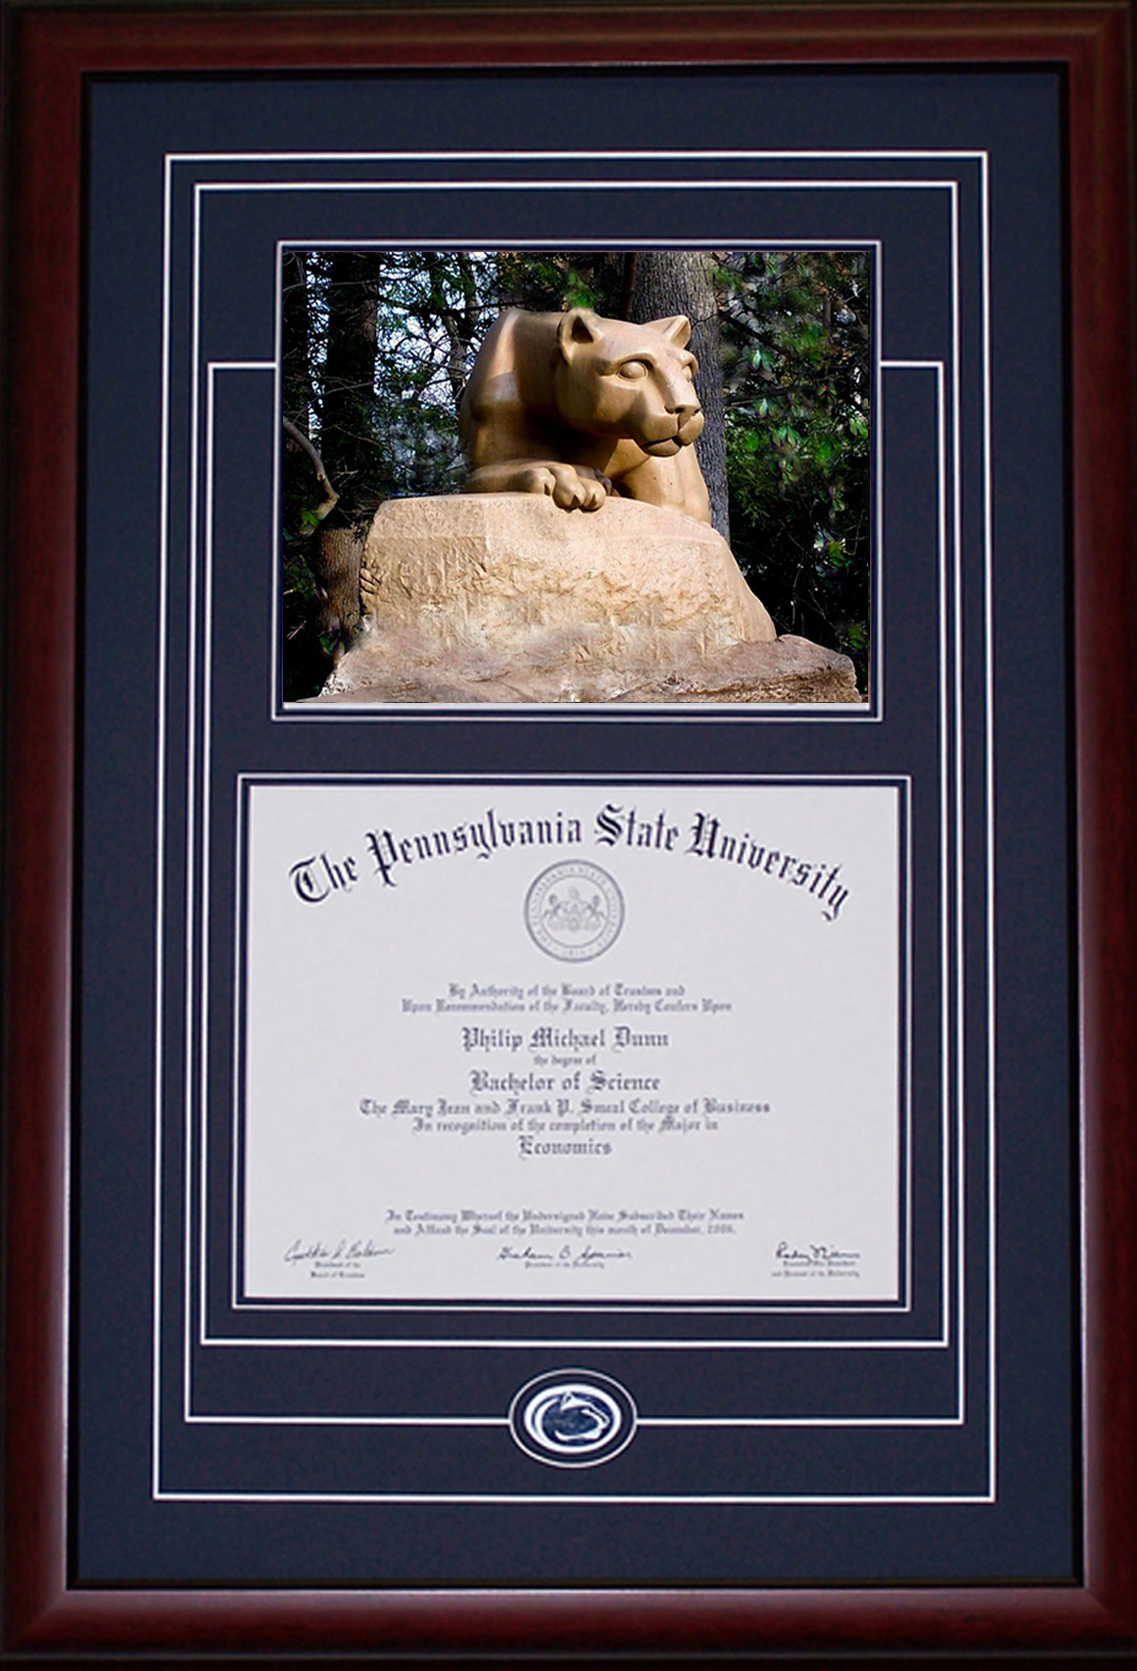 Diploma Frames | Old Main Frame Shop & Gallery